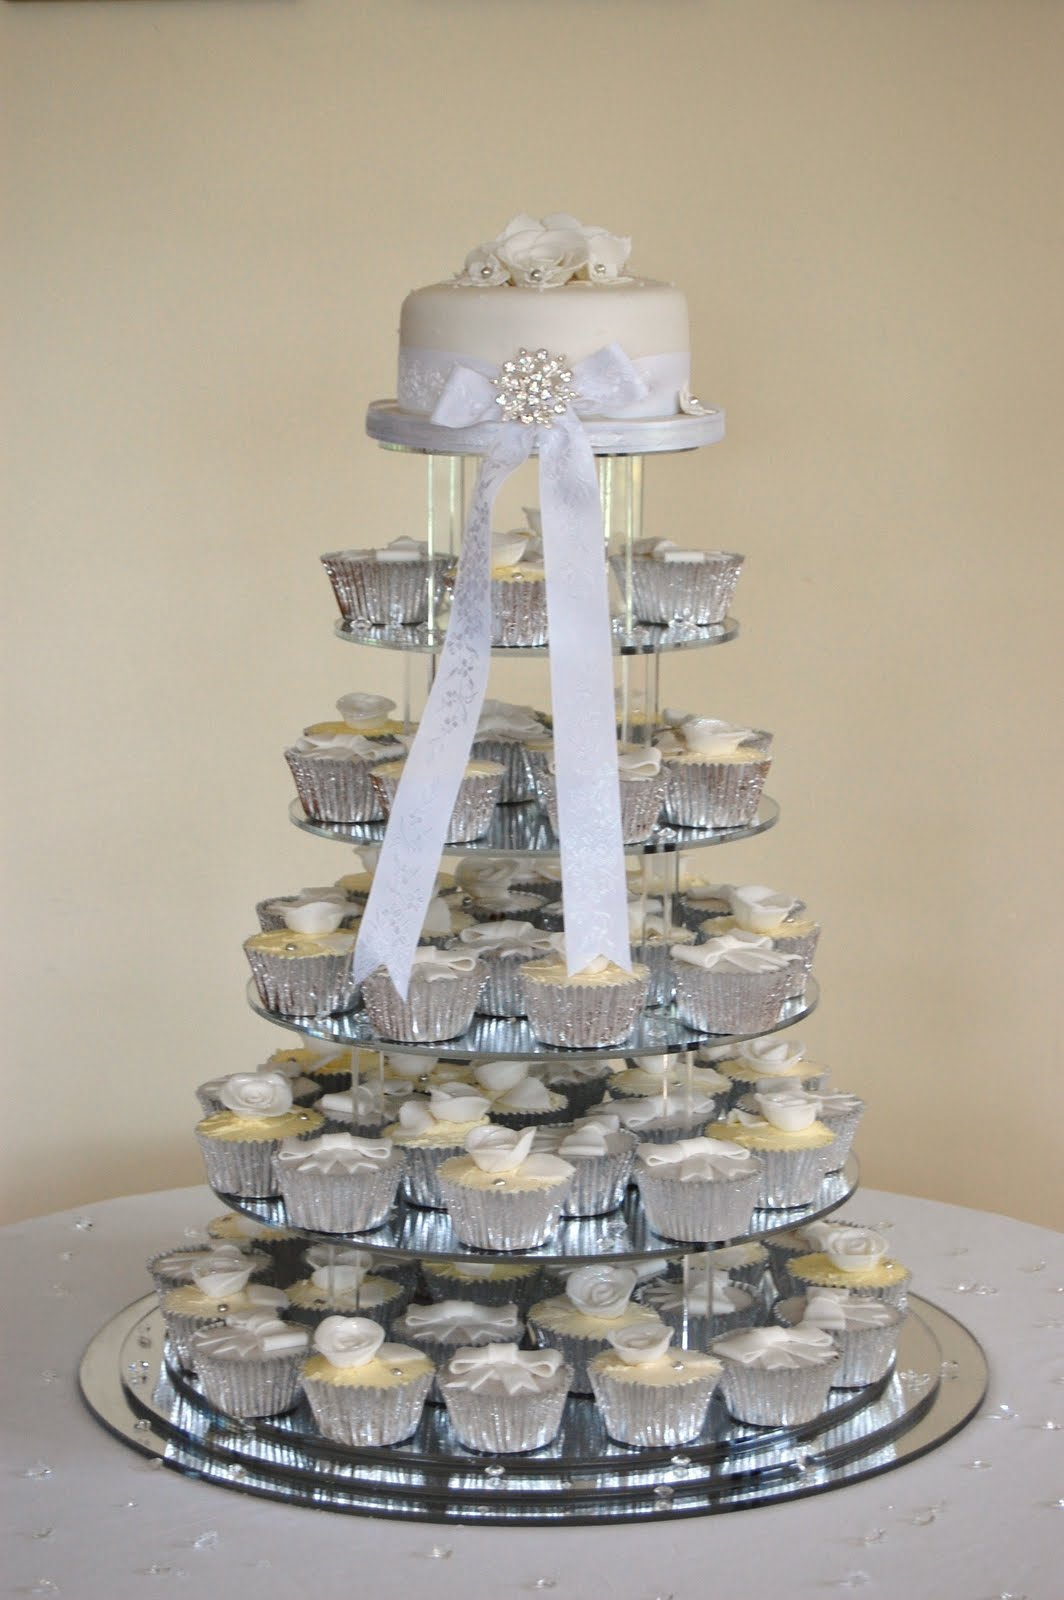 Cupcake Wedding Cakes Great Cake Ideas